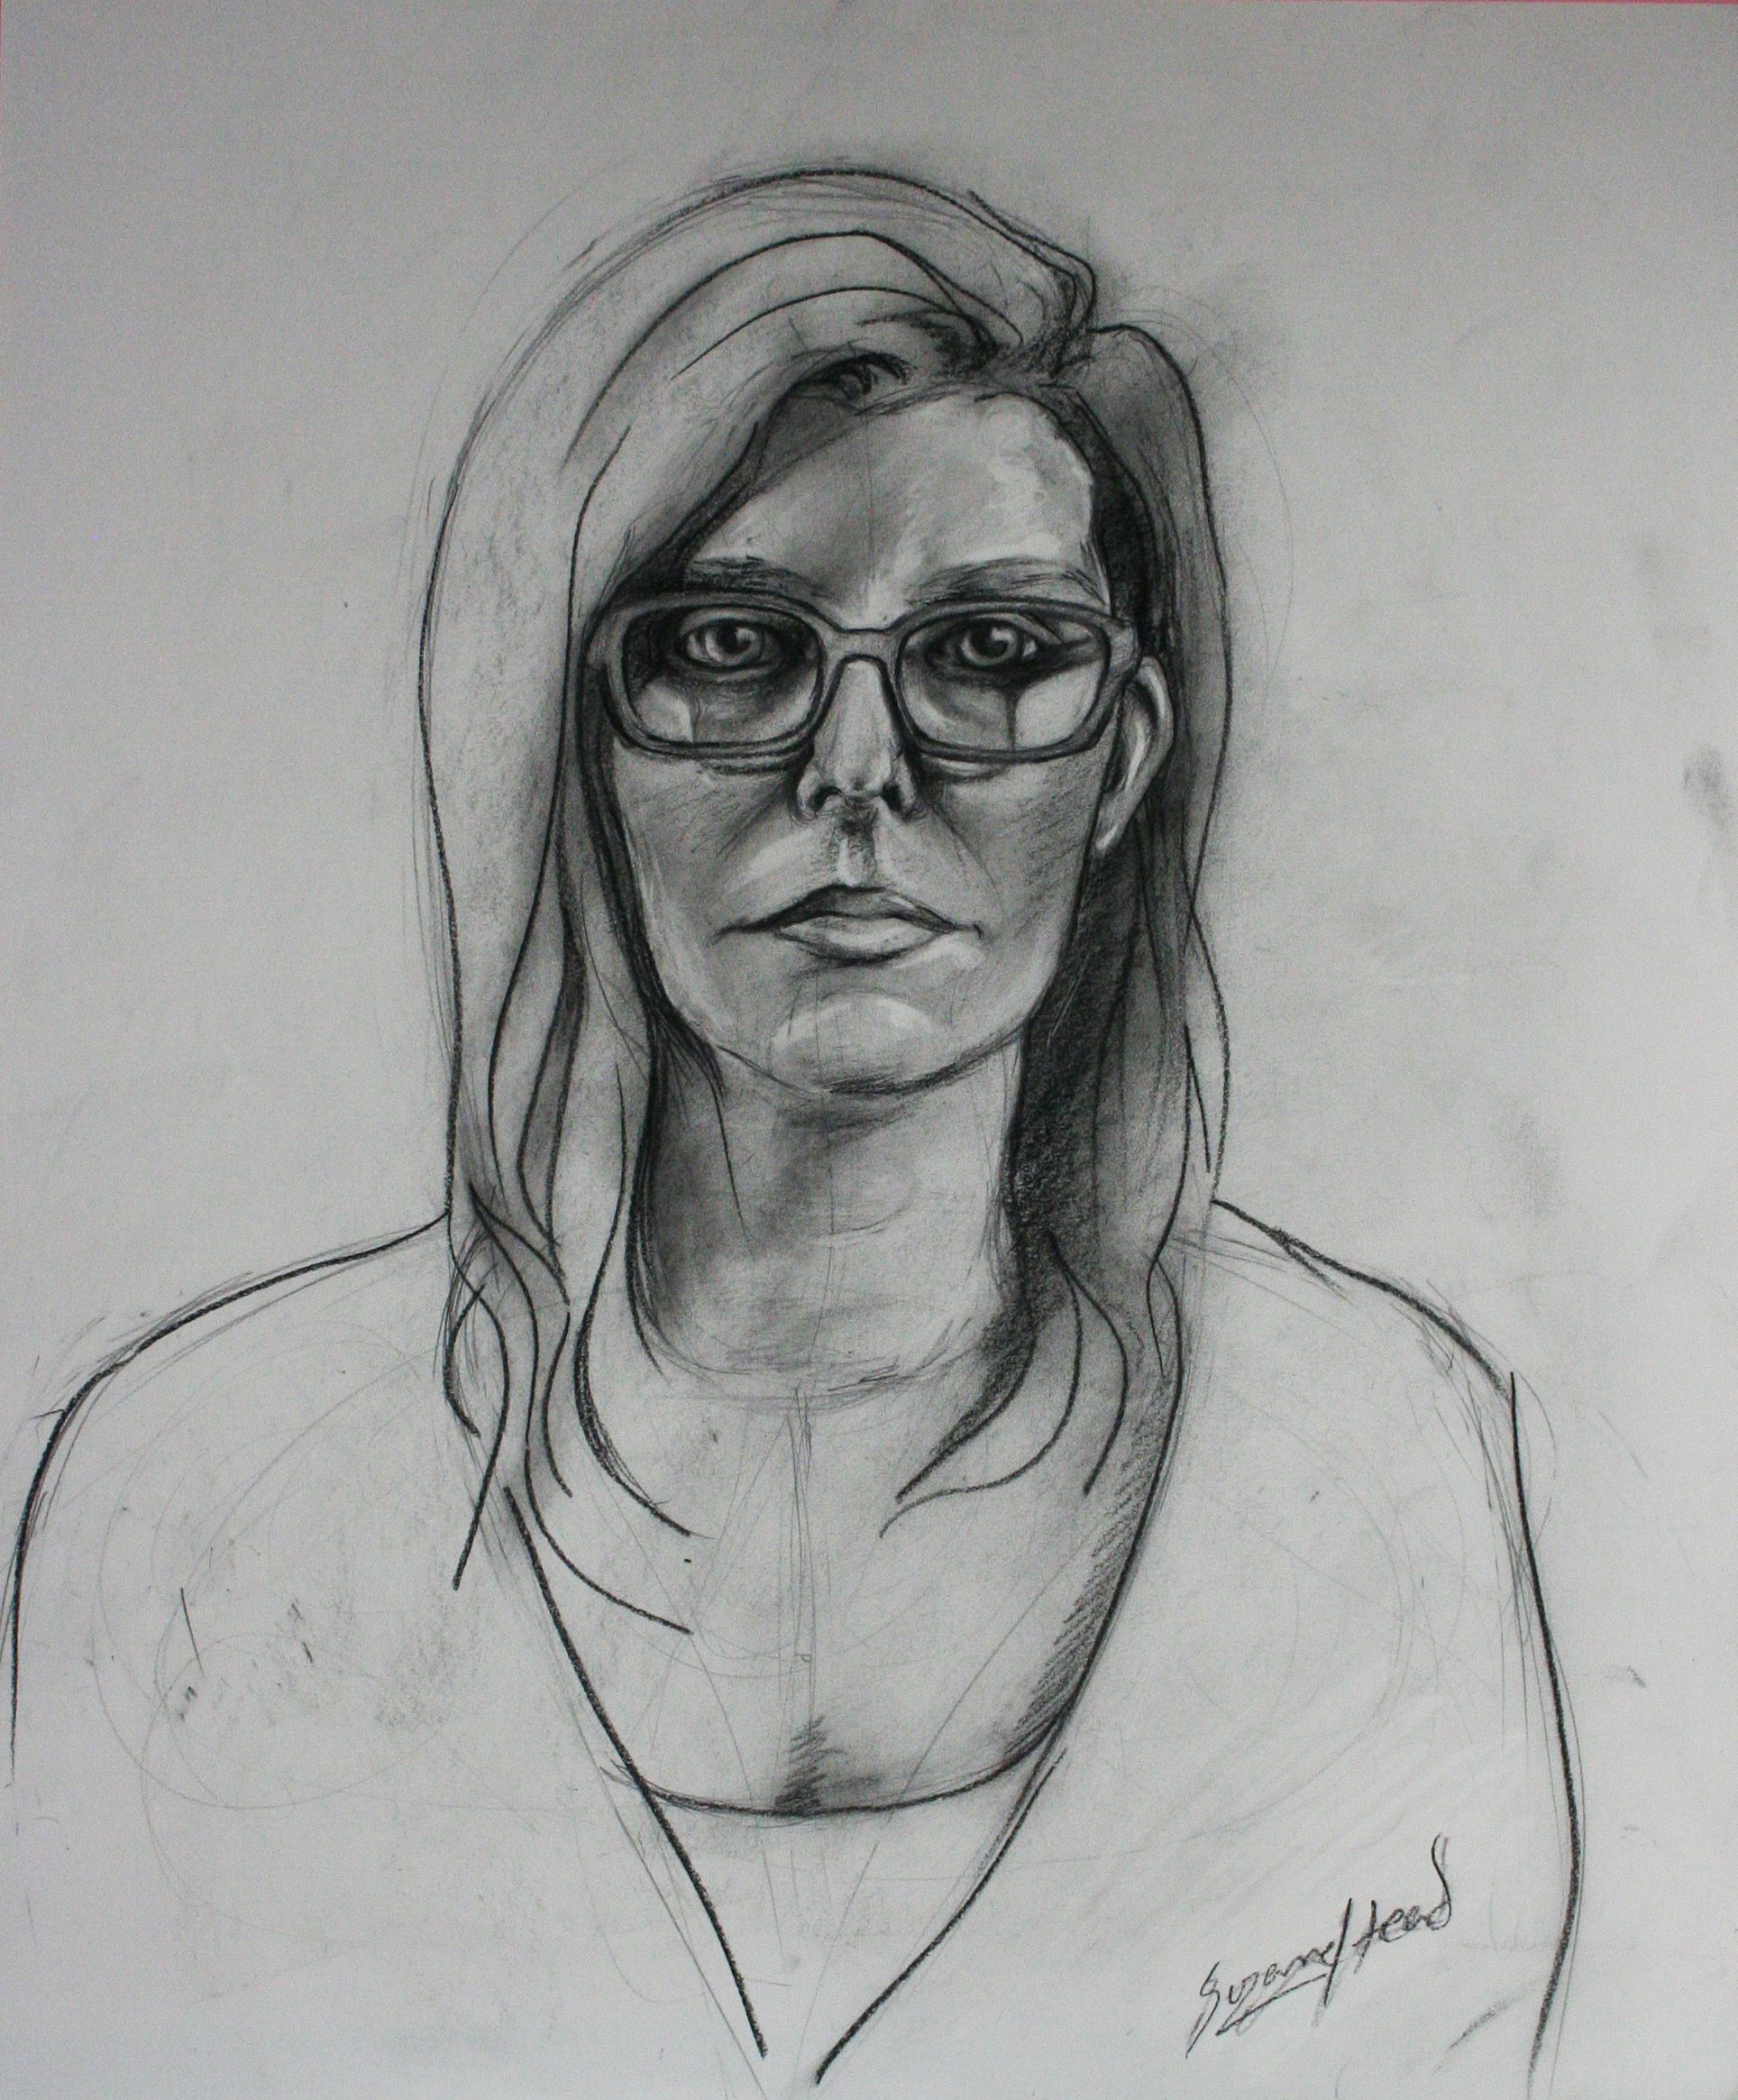 Suzanne Head did this two and a half hour drawing.